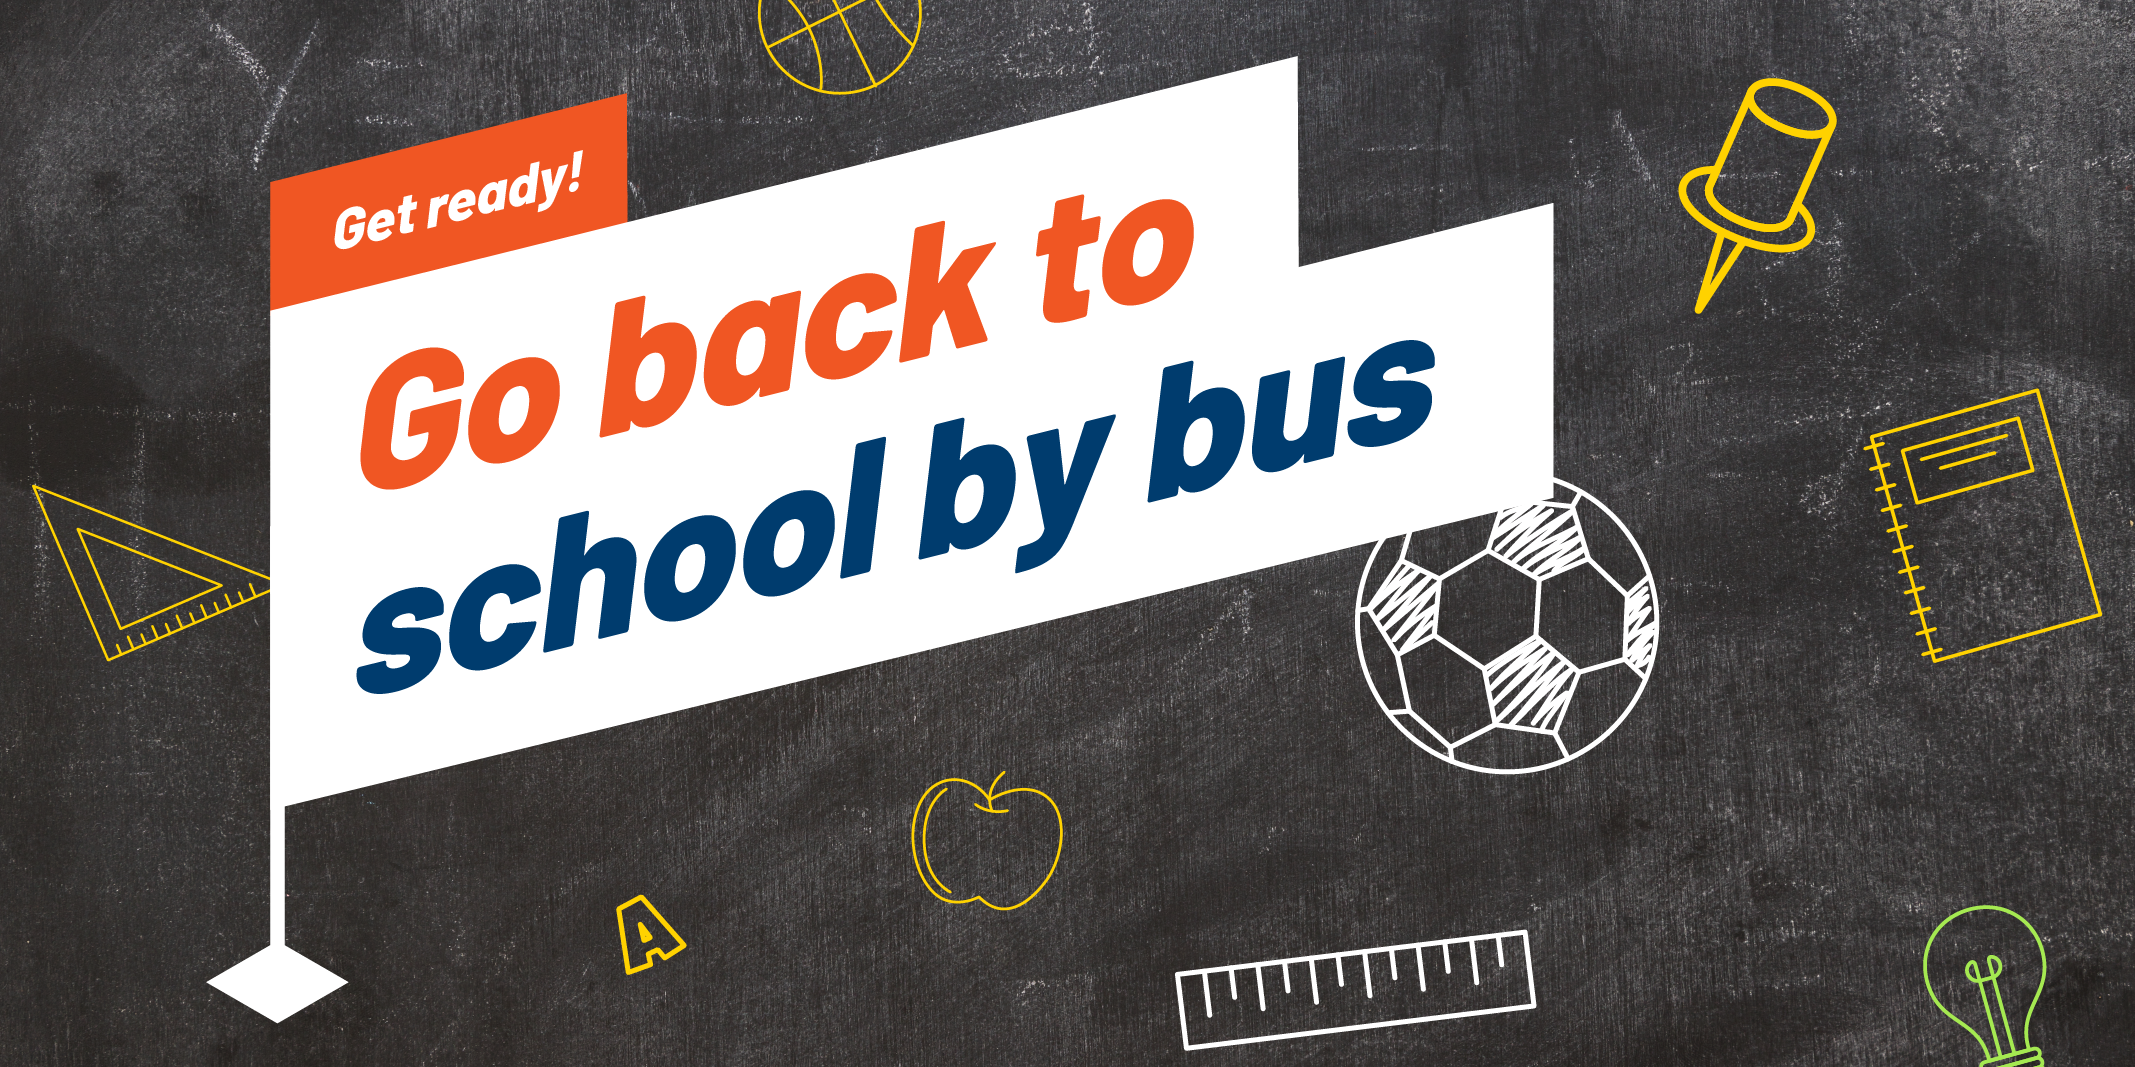 Go back to school by bus